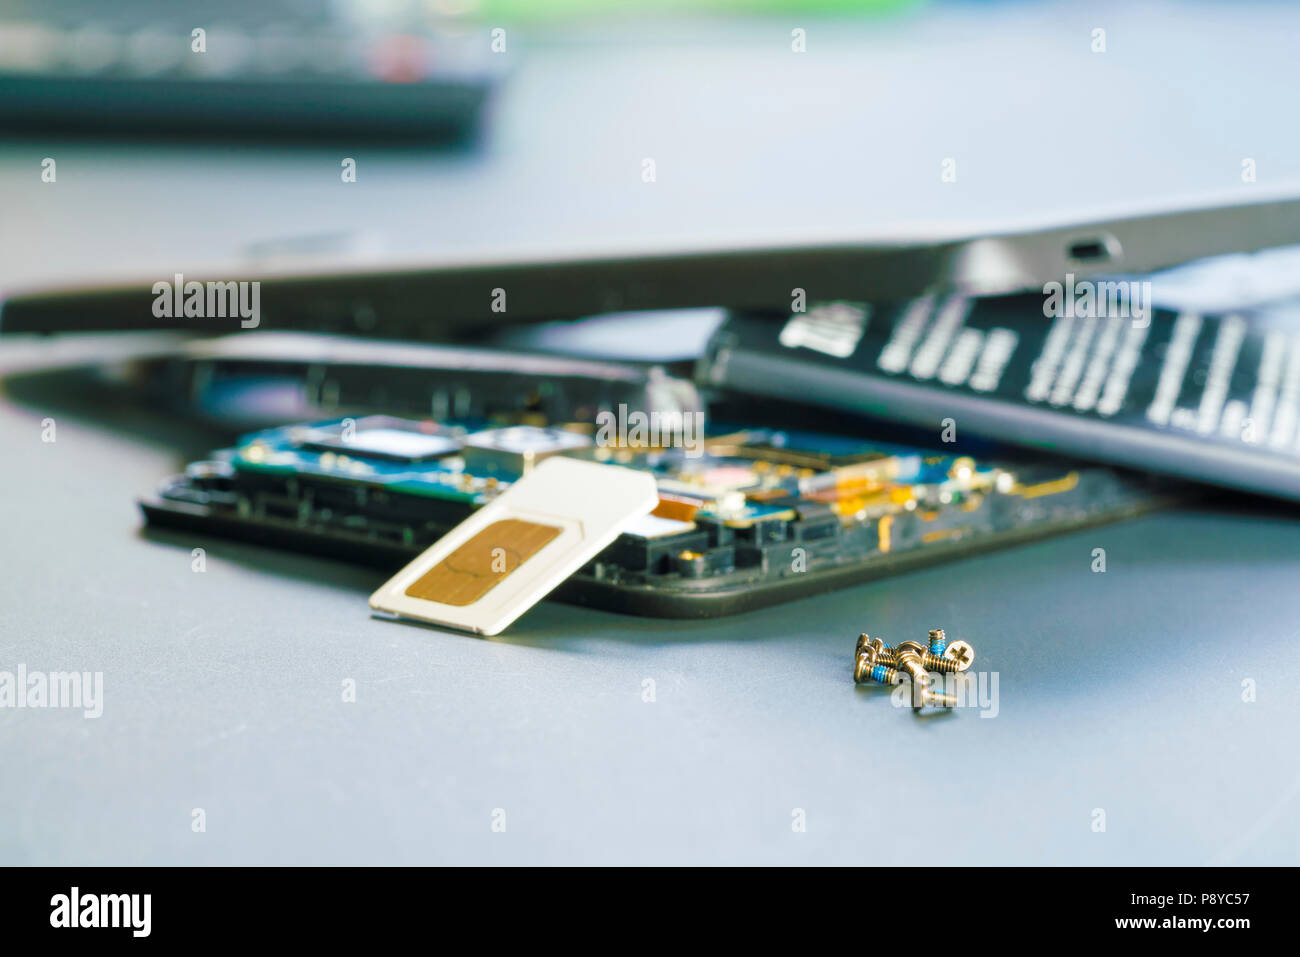 Disassembled mobile phone in the service centre with internal components of the camera and speaker. - Stock Image